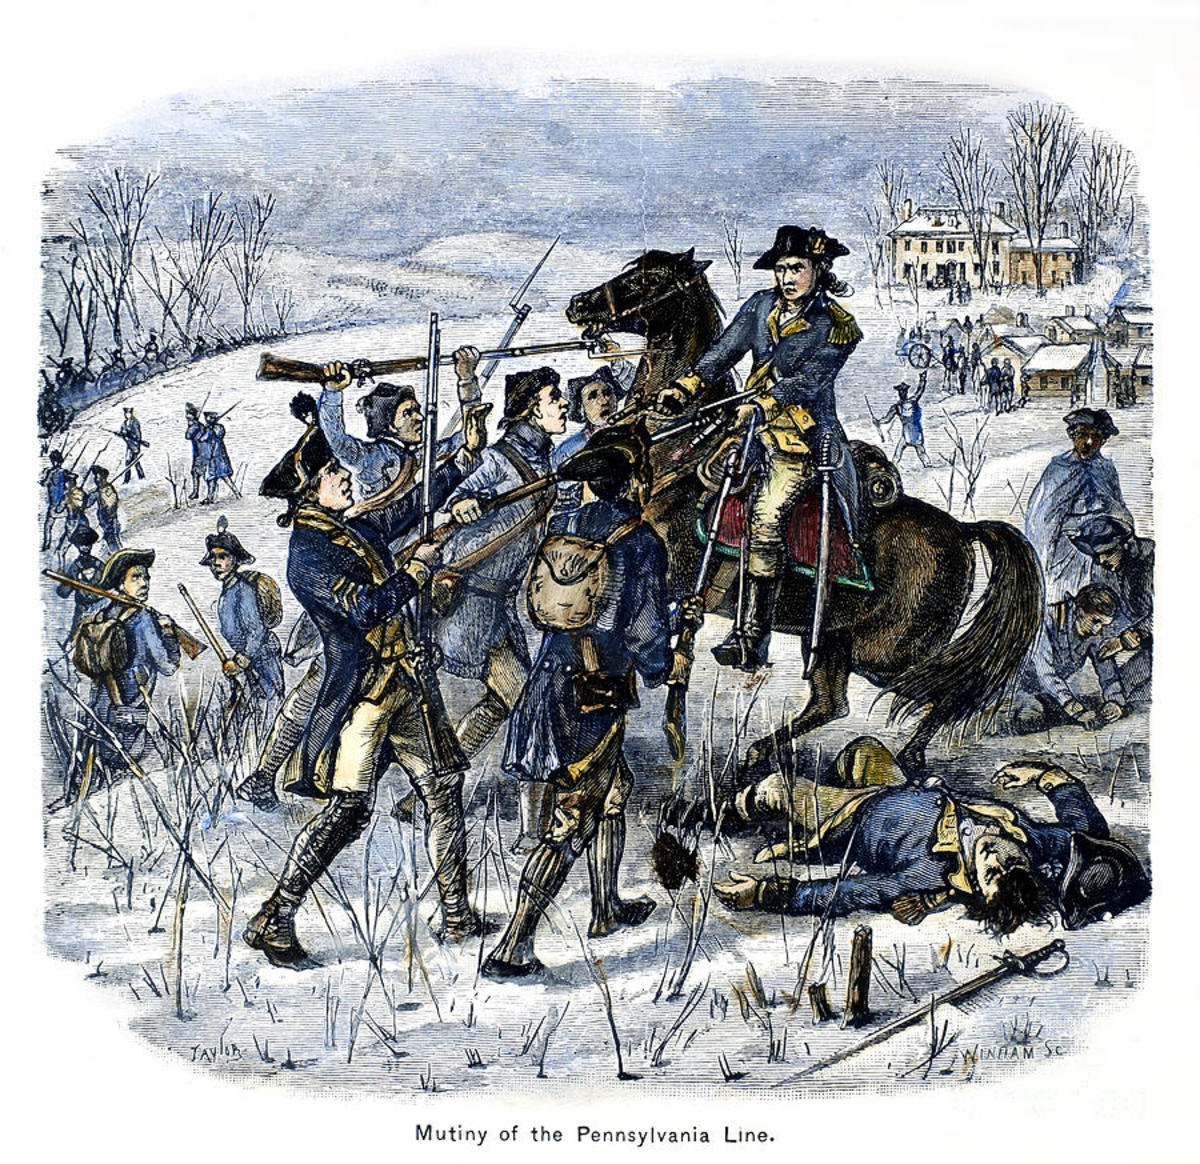 In 1783 dissatisfied Pennsylvania veterans, demanding back pay, forced members of the Continental Congress to flee Philadelphia to Princeton, New Jersey